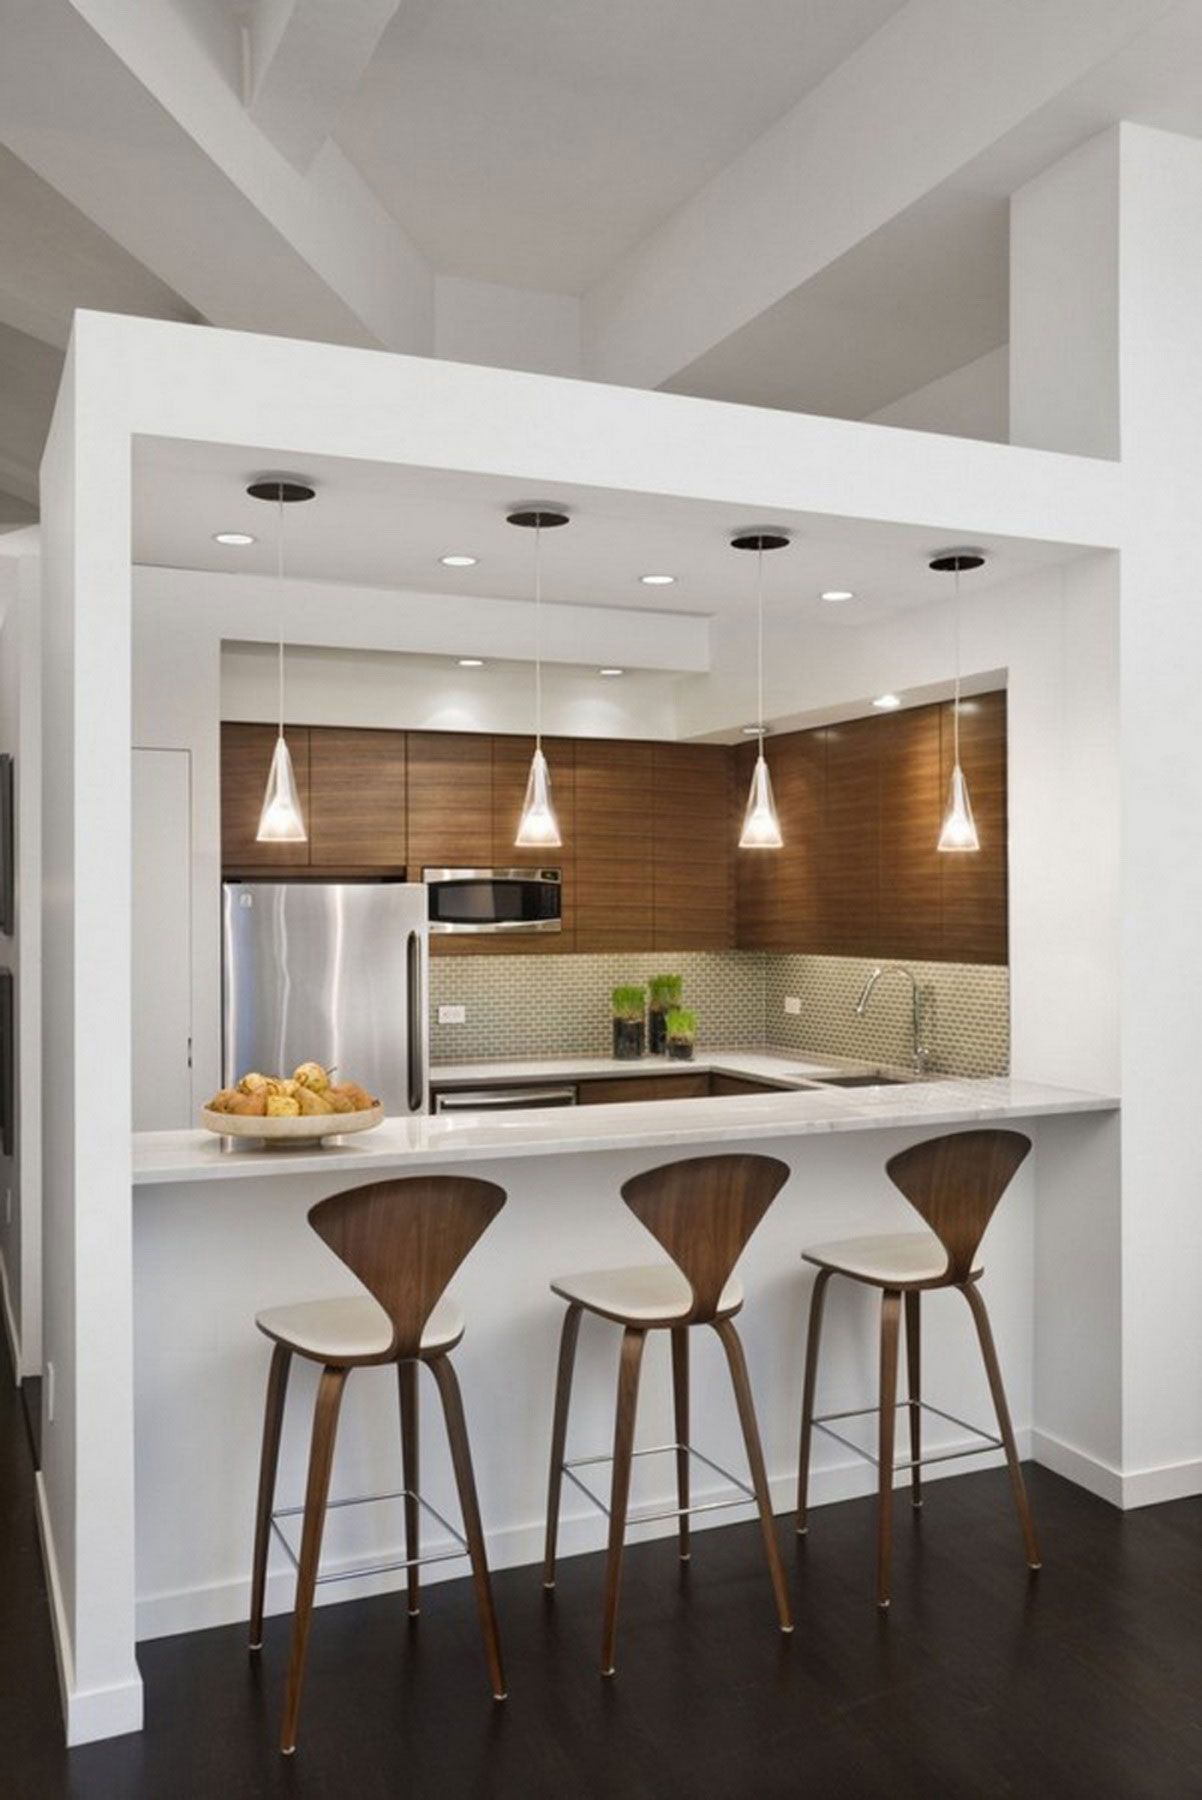 Check out small kitchen design ideas what these kitchens lack in space they make up for with style their secret good storage is the ultimate also cocina pinterest cocinas rh co